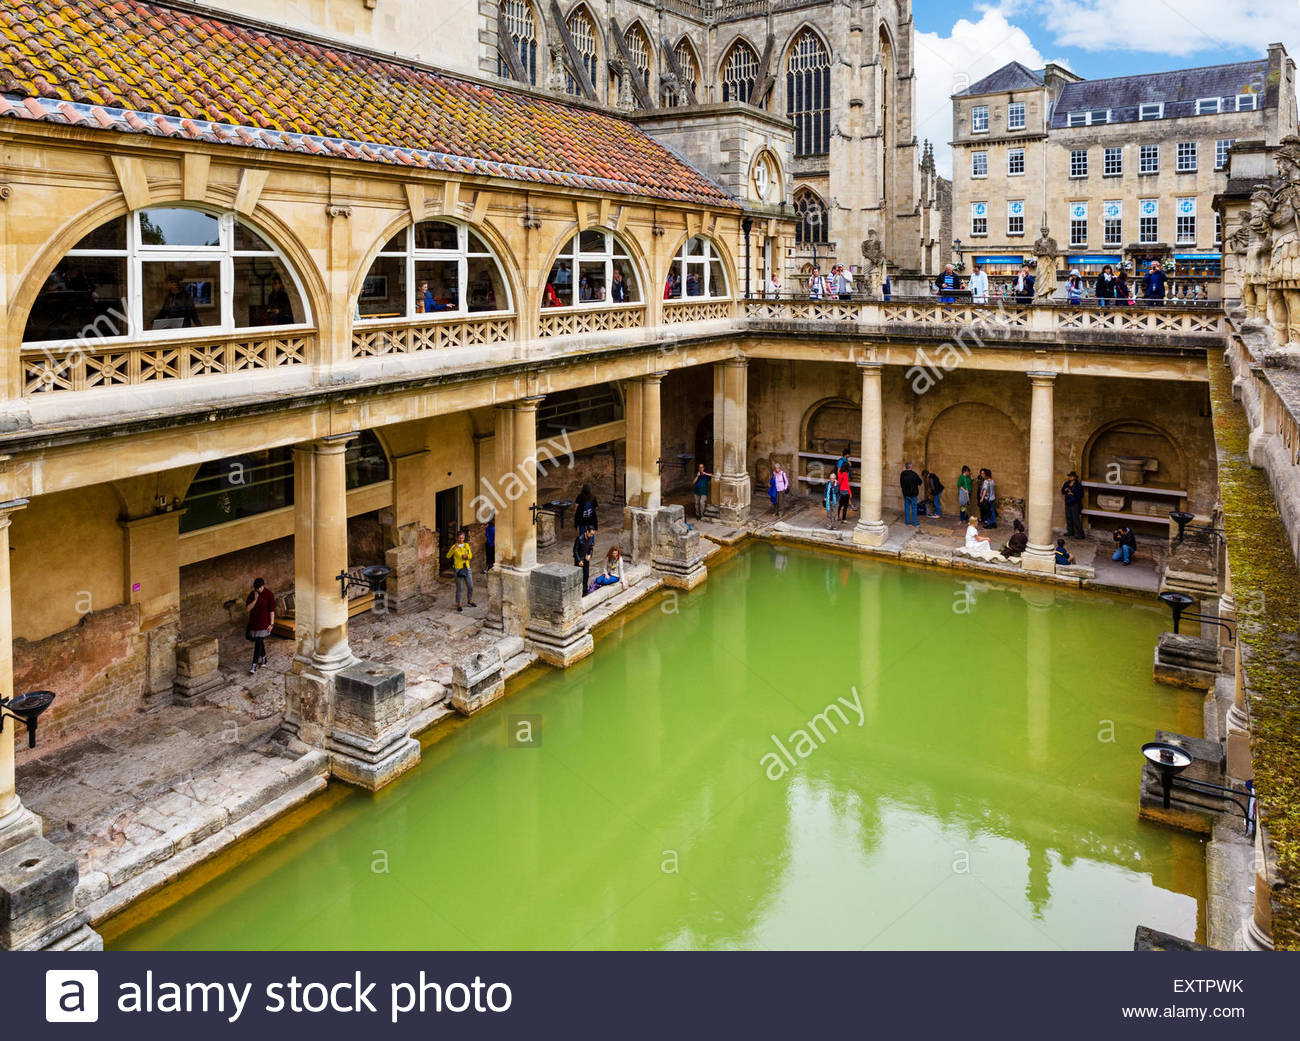 the-great-bath-at-the-roman-baths-in-bath-somerset-england-uk-EXTPWK